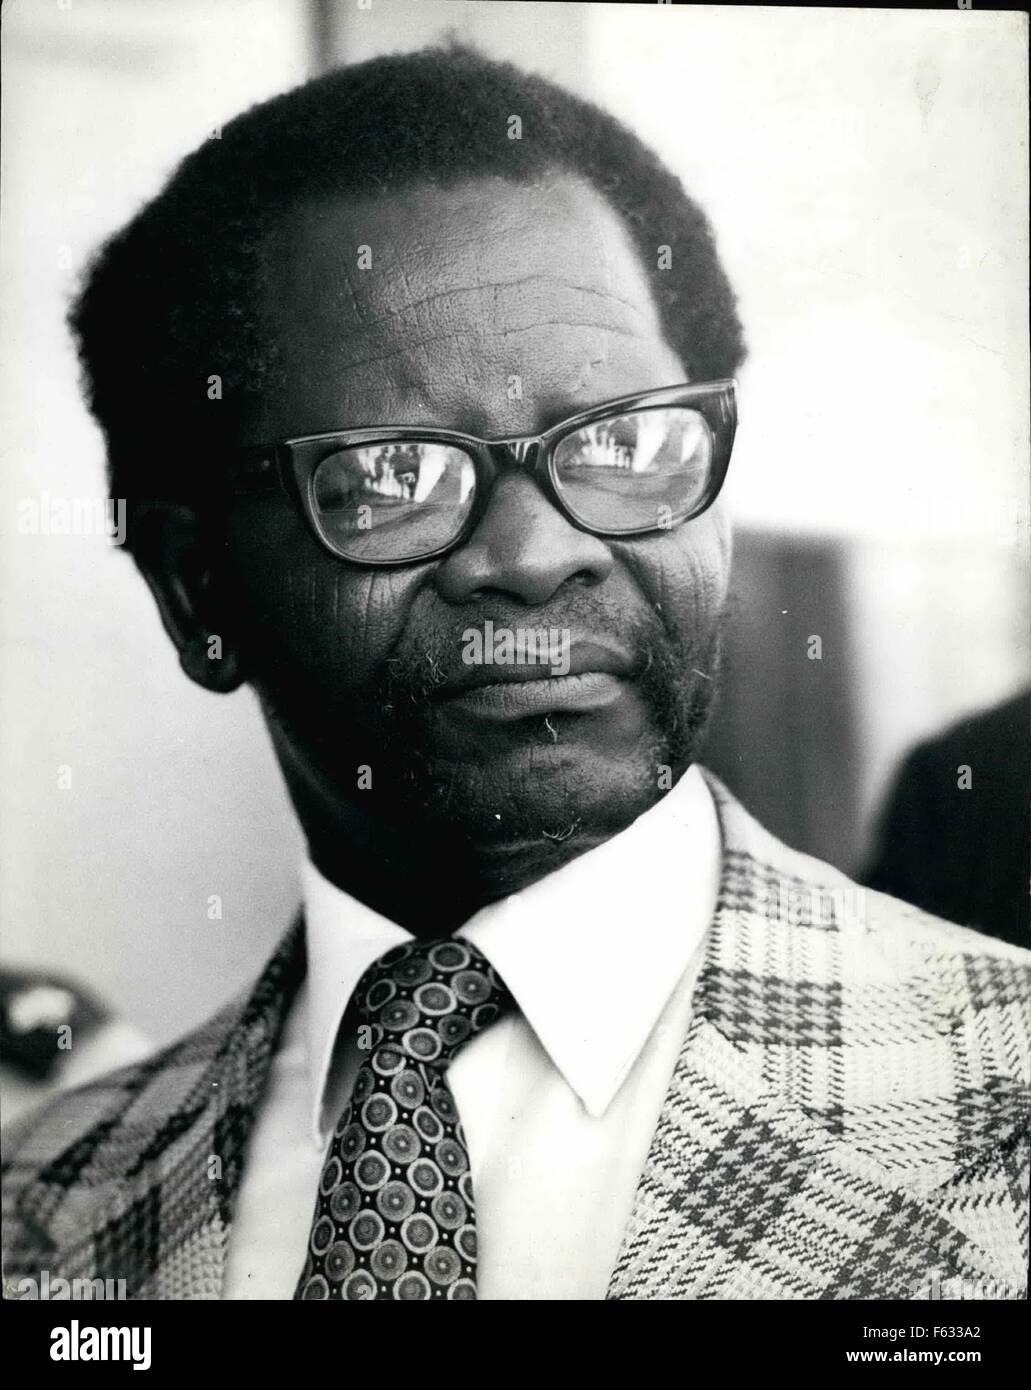 1973 - Oliver Tambo, President of the African National Congress of South Africa. Born 1917. Educated Fort Hare University. - Stock Image